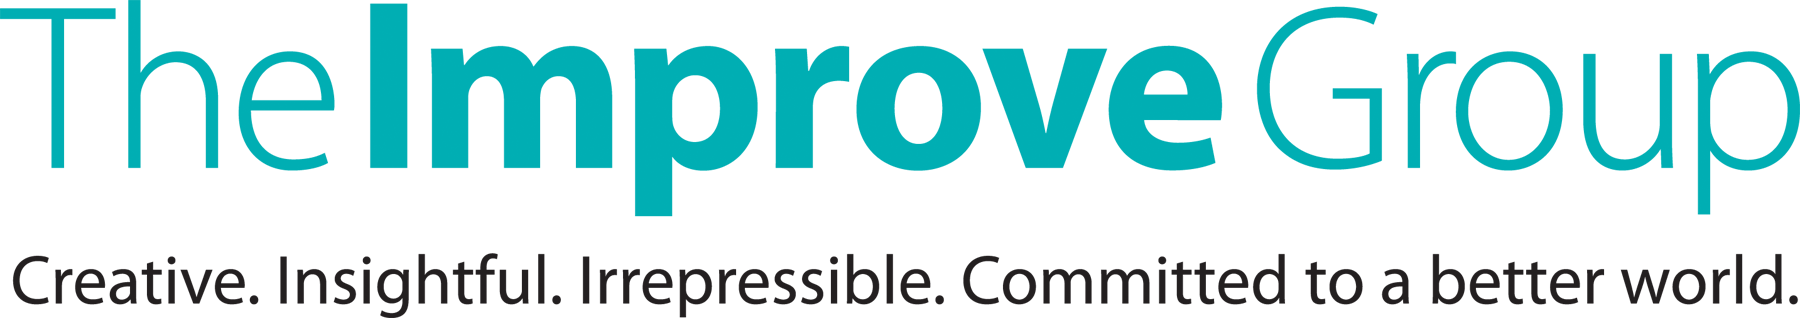 The Improve Group Logo with Tagline